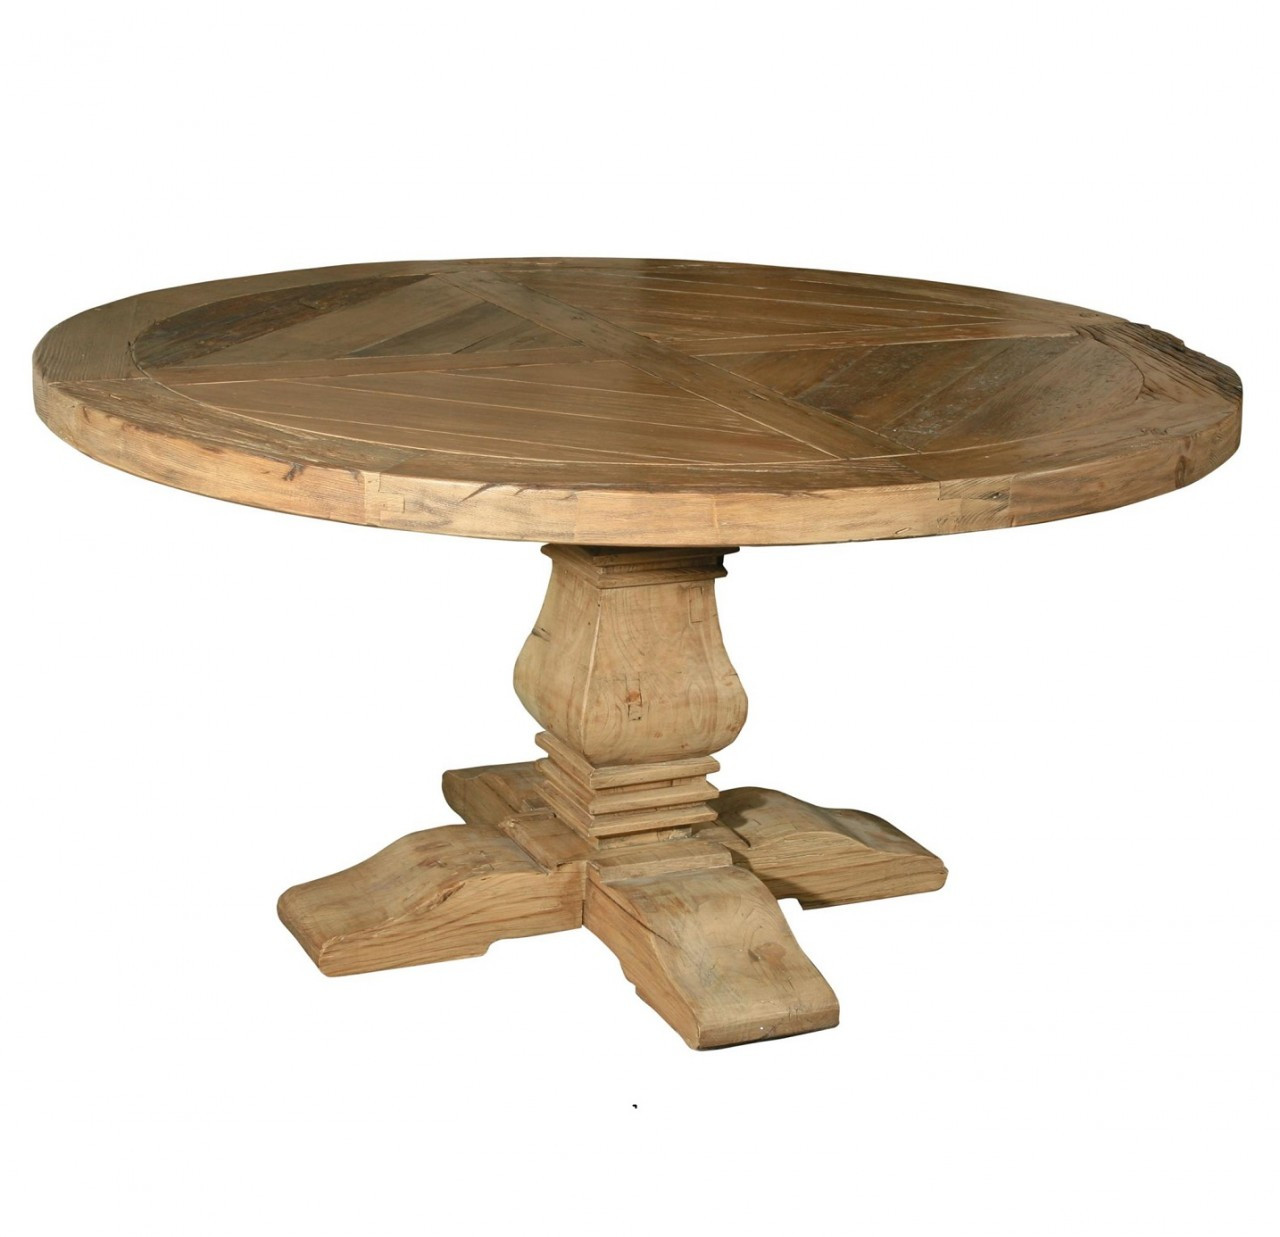 Pedestal 60 round dining table reclaimed wood round for Round wood dining room table